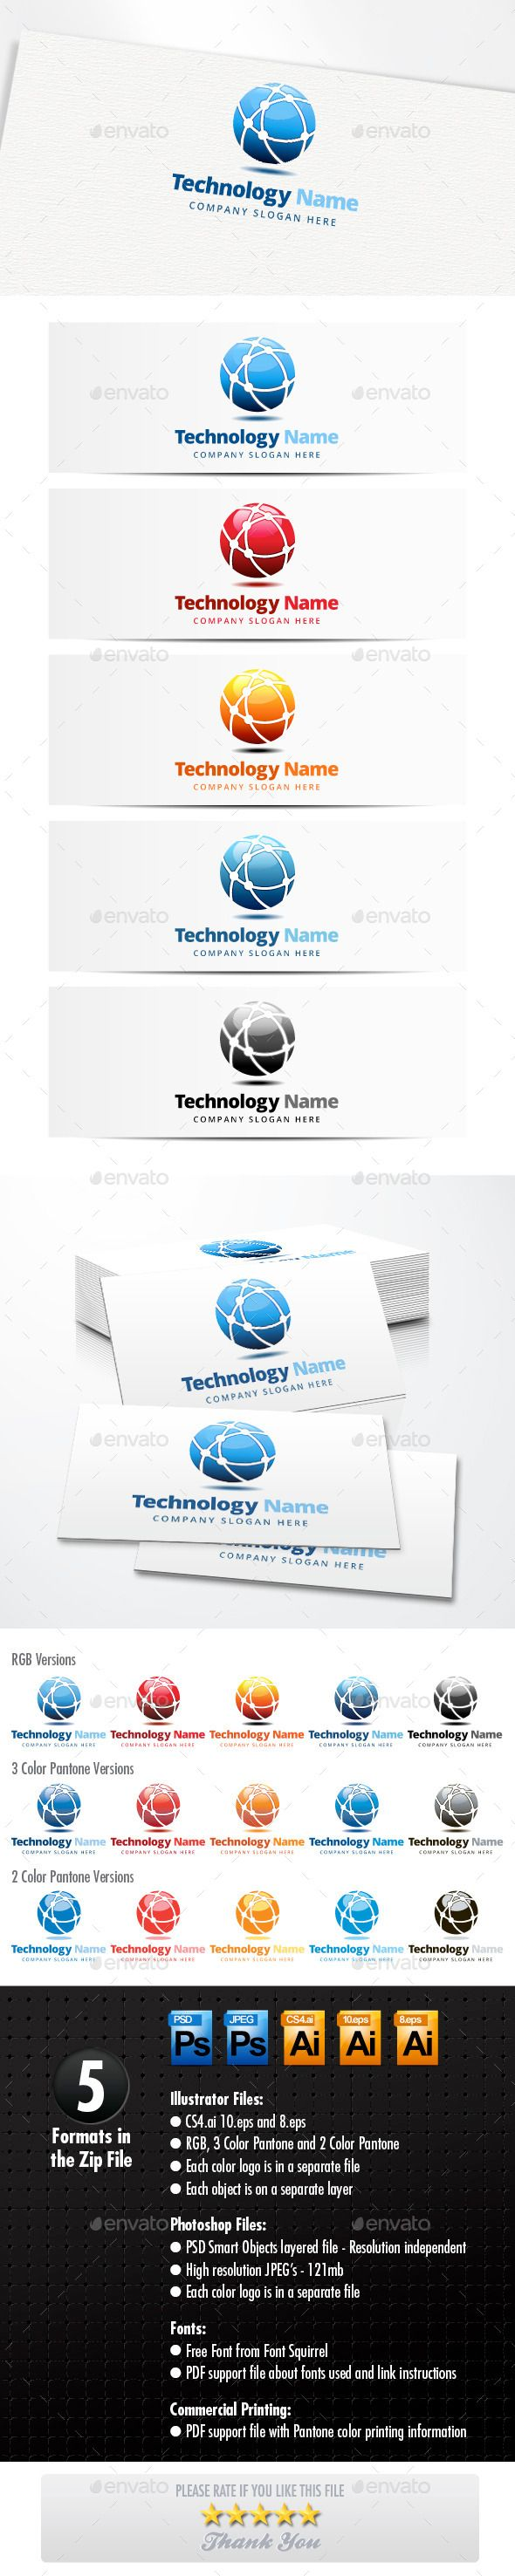 Technology Logo by H2Oone Technology Network LogoA modern logo template suitable for internet, technology, communication, companies and software devel…